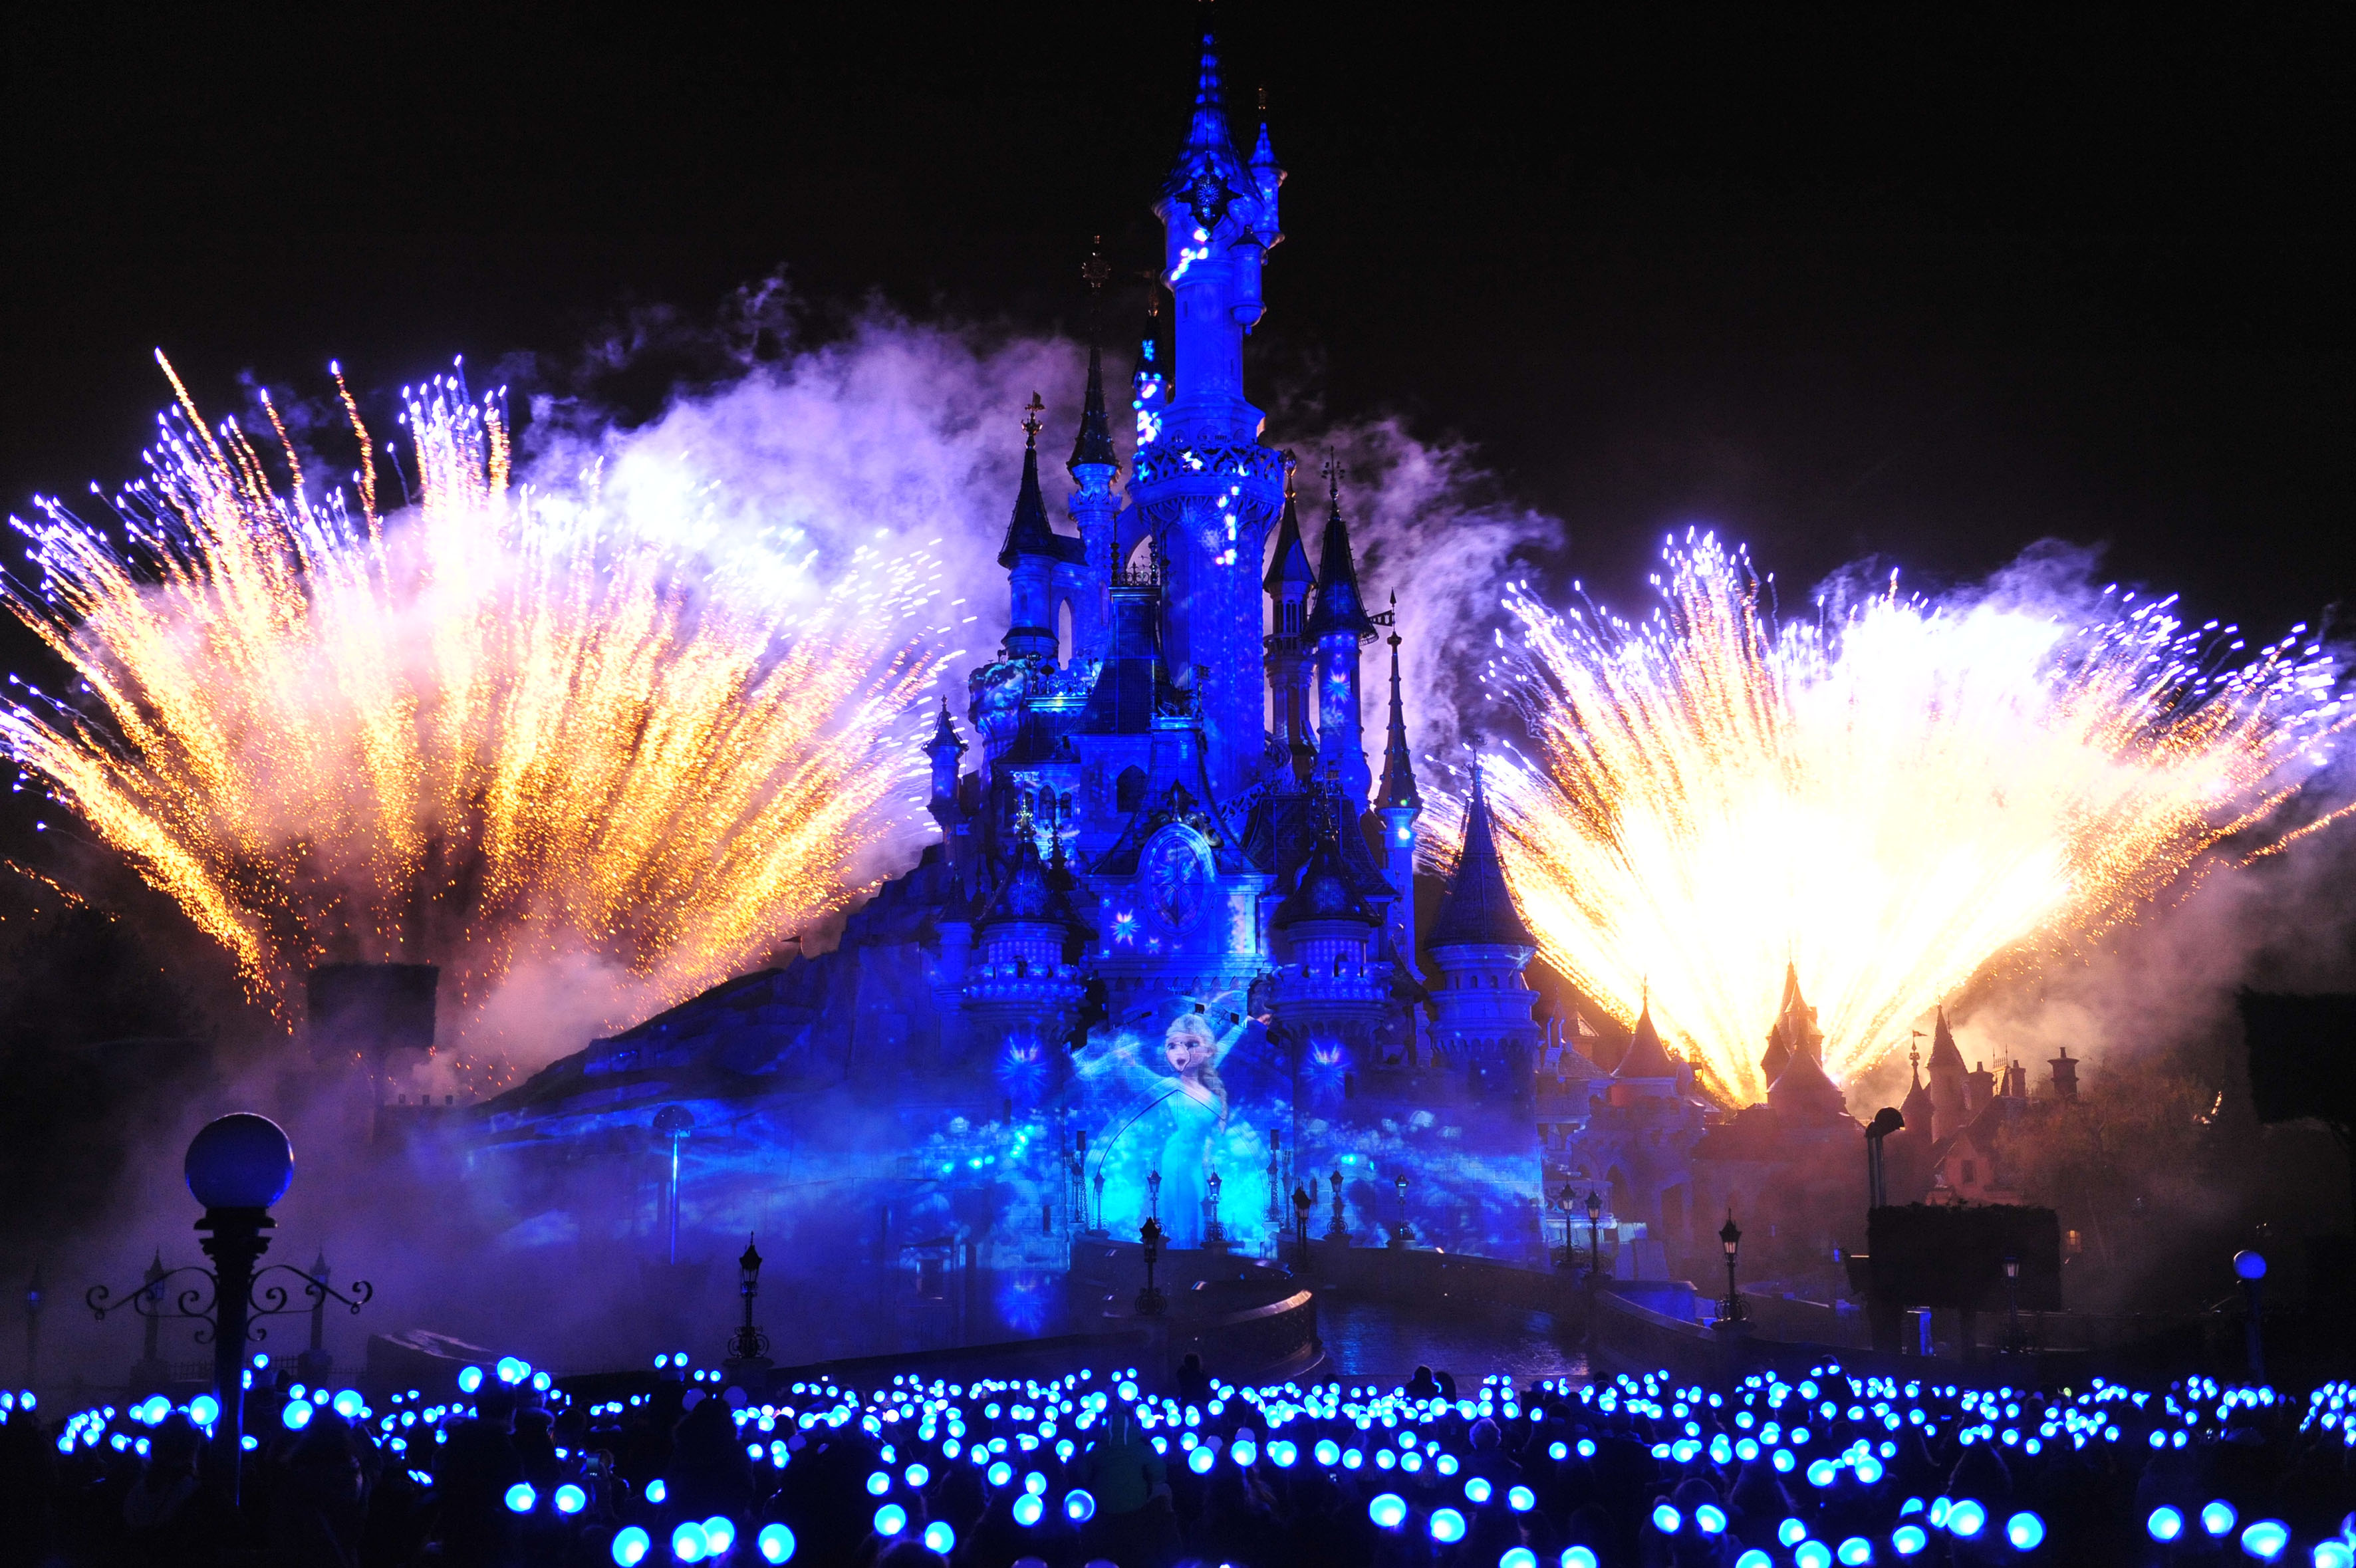 Disneyland Paris New Years Eve 2015 Fireworks - LTT